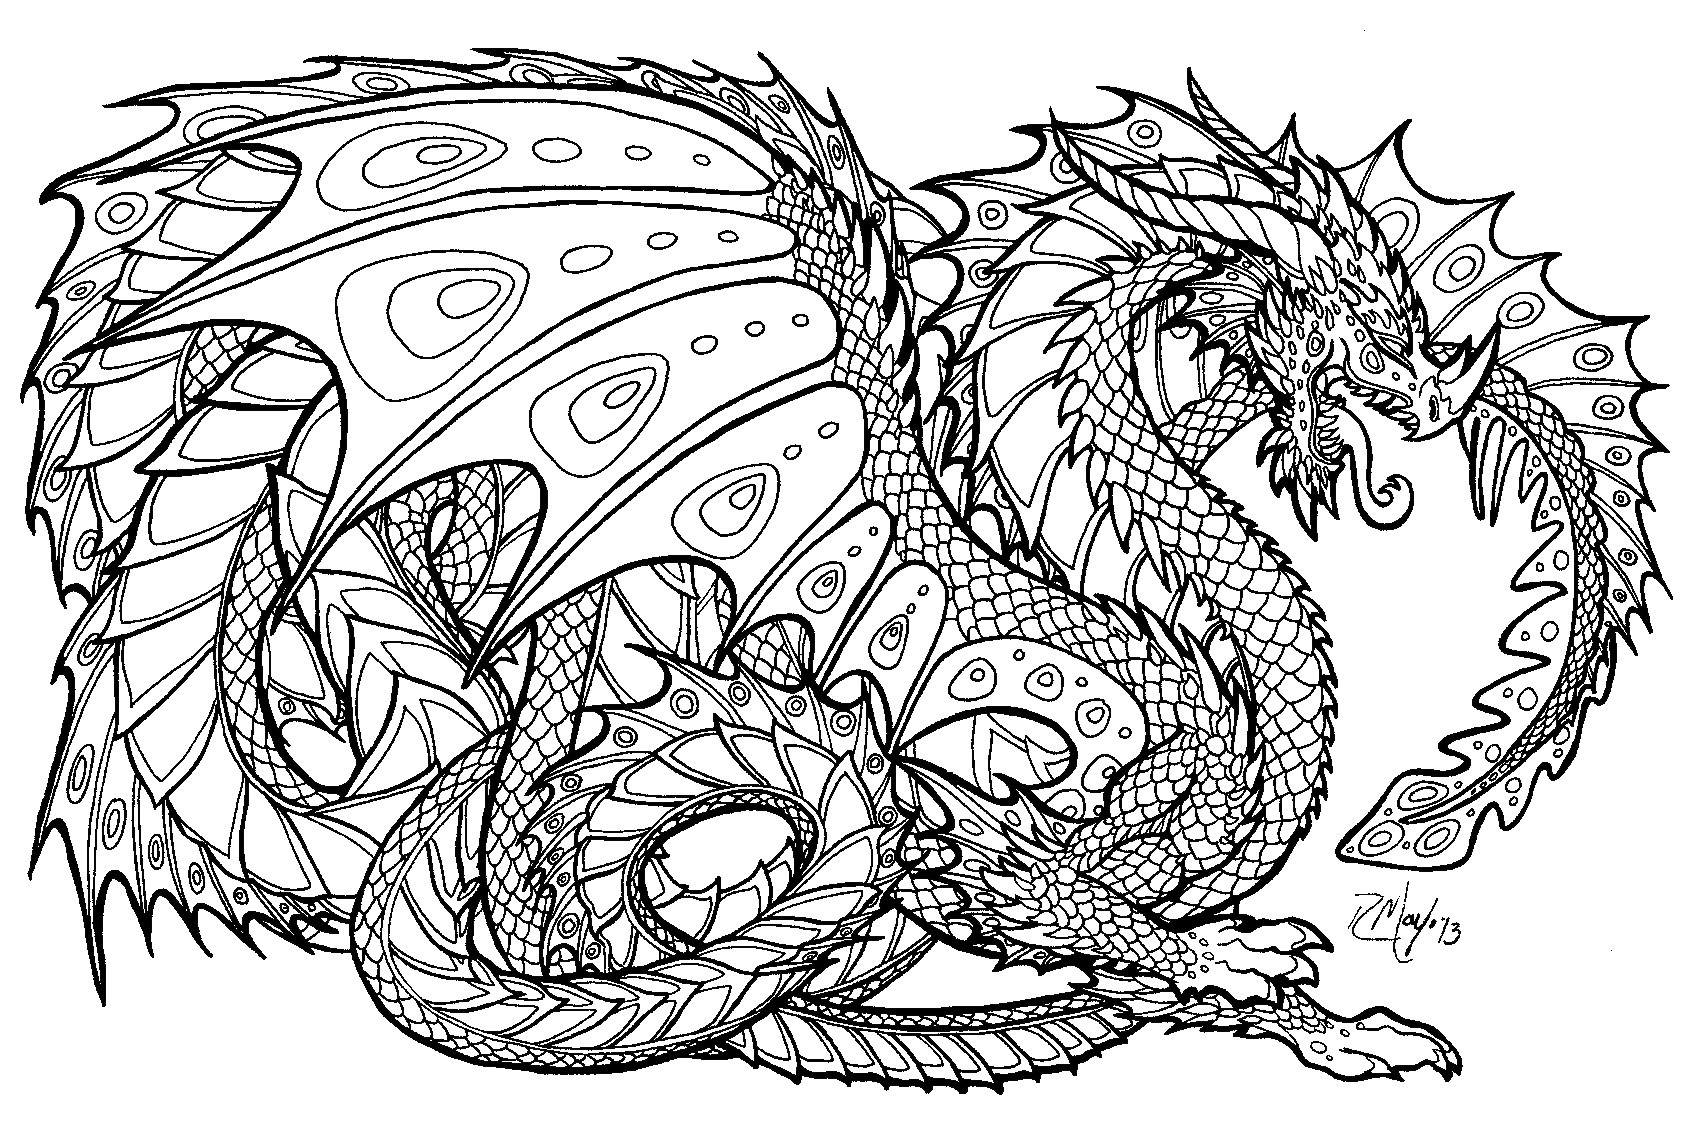 Coloring Pages For Kids Dragons  Free Dragon Coloring Pages For Kids Image 34 Gianfreda